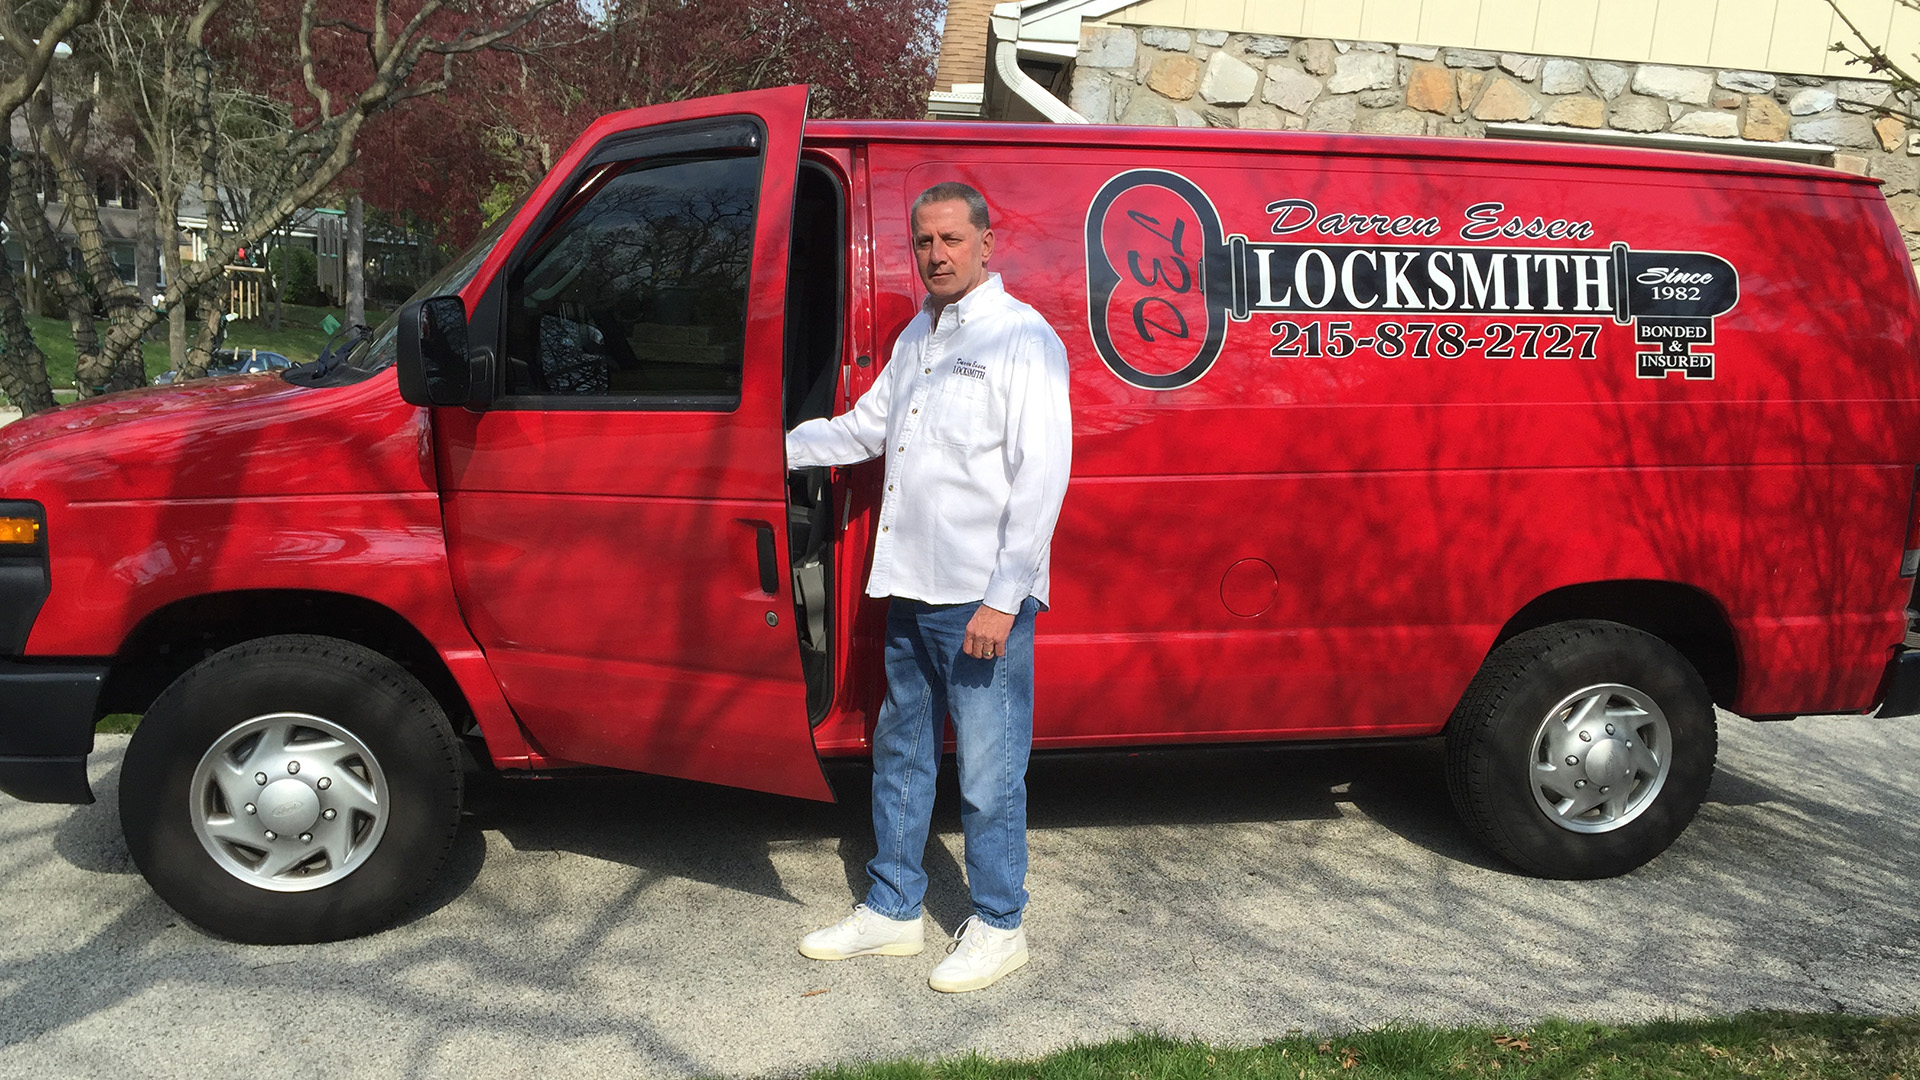 Lower Merion Township: Locksmith, Lockouts and Locks changed